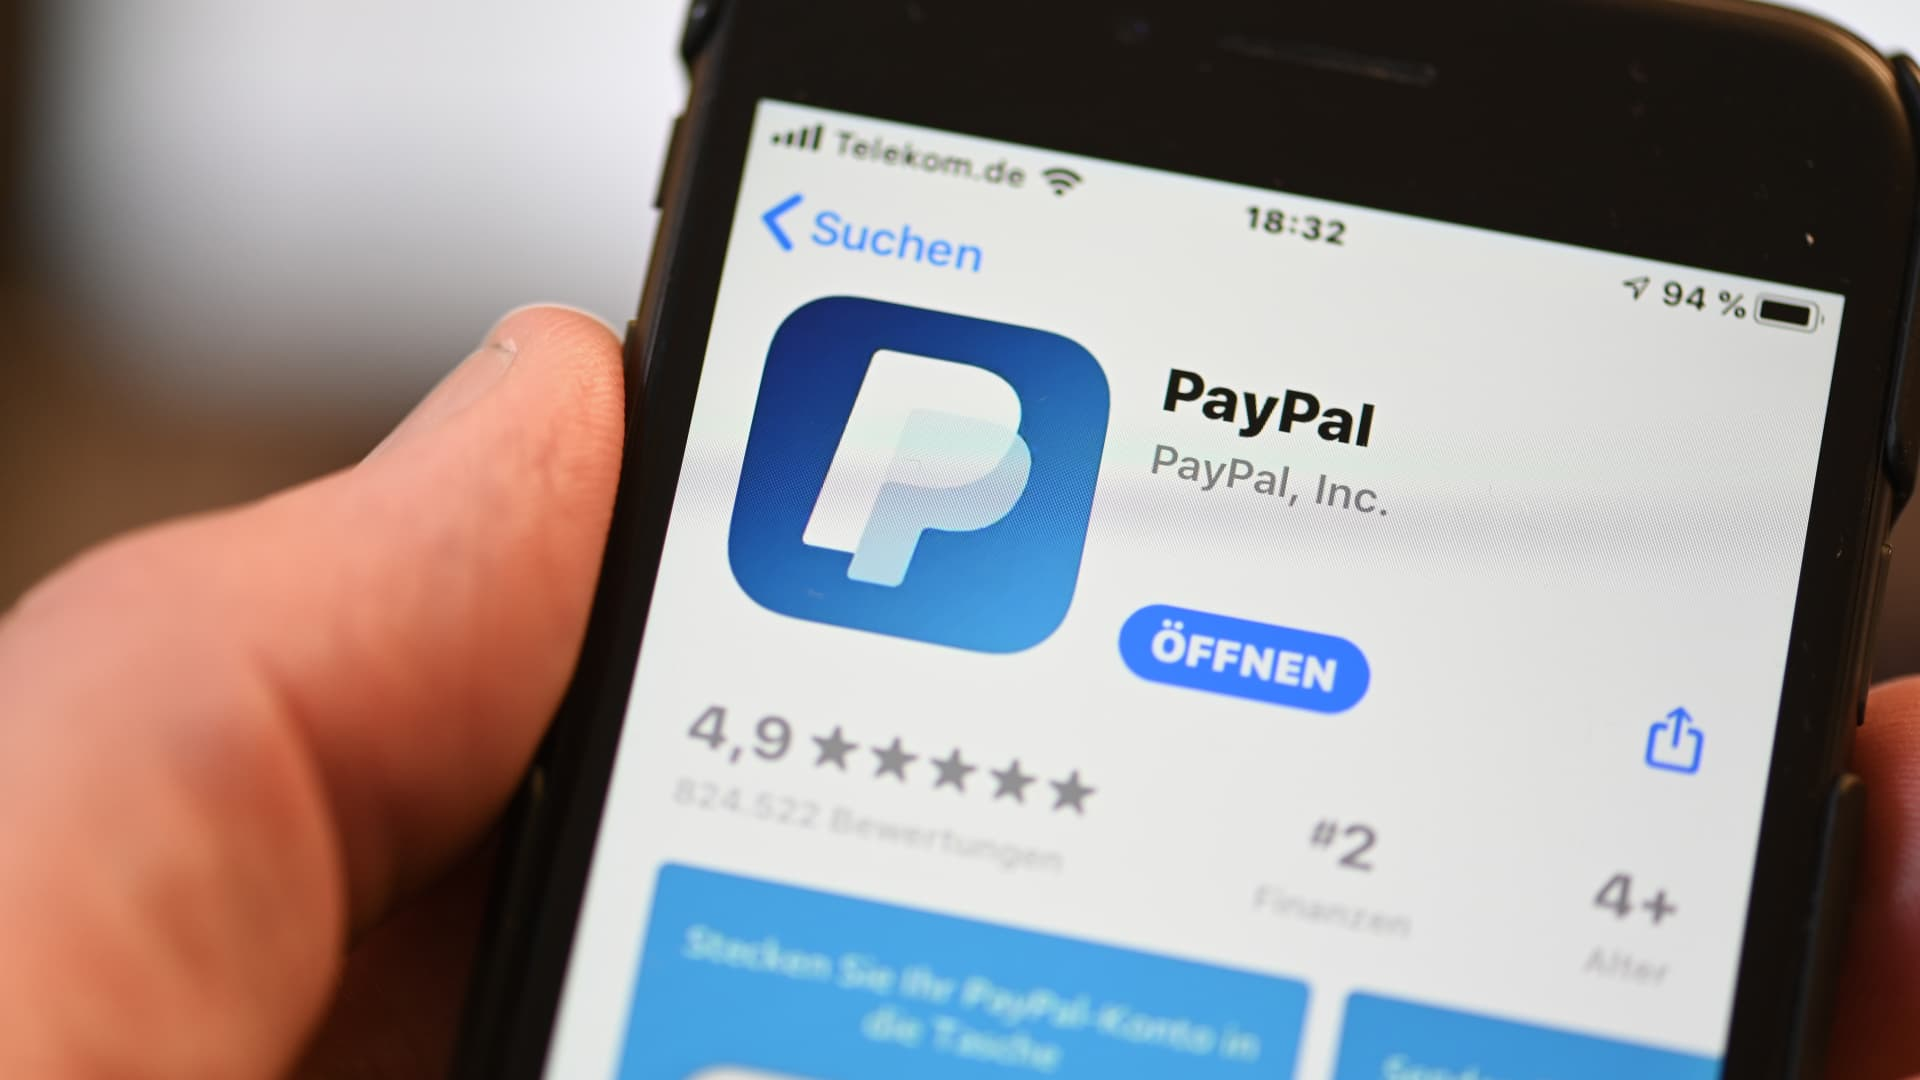 The PayPal application can be seen on a mobile phone.